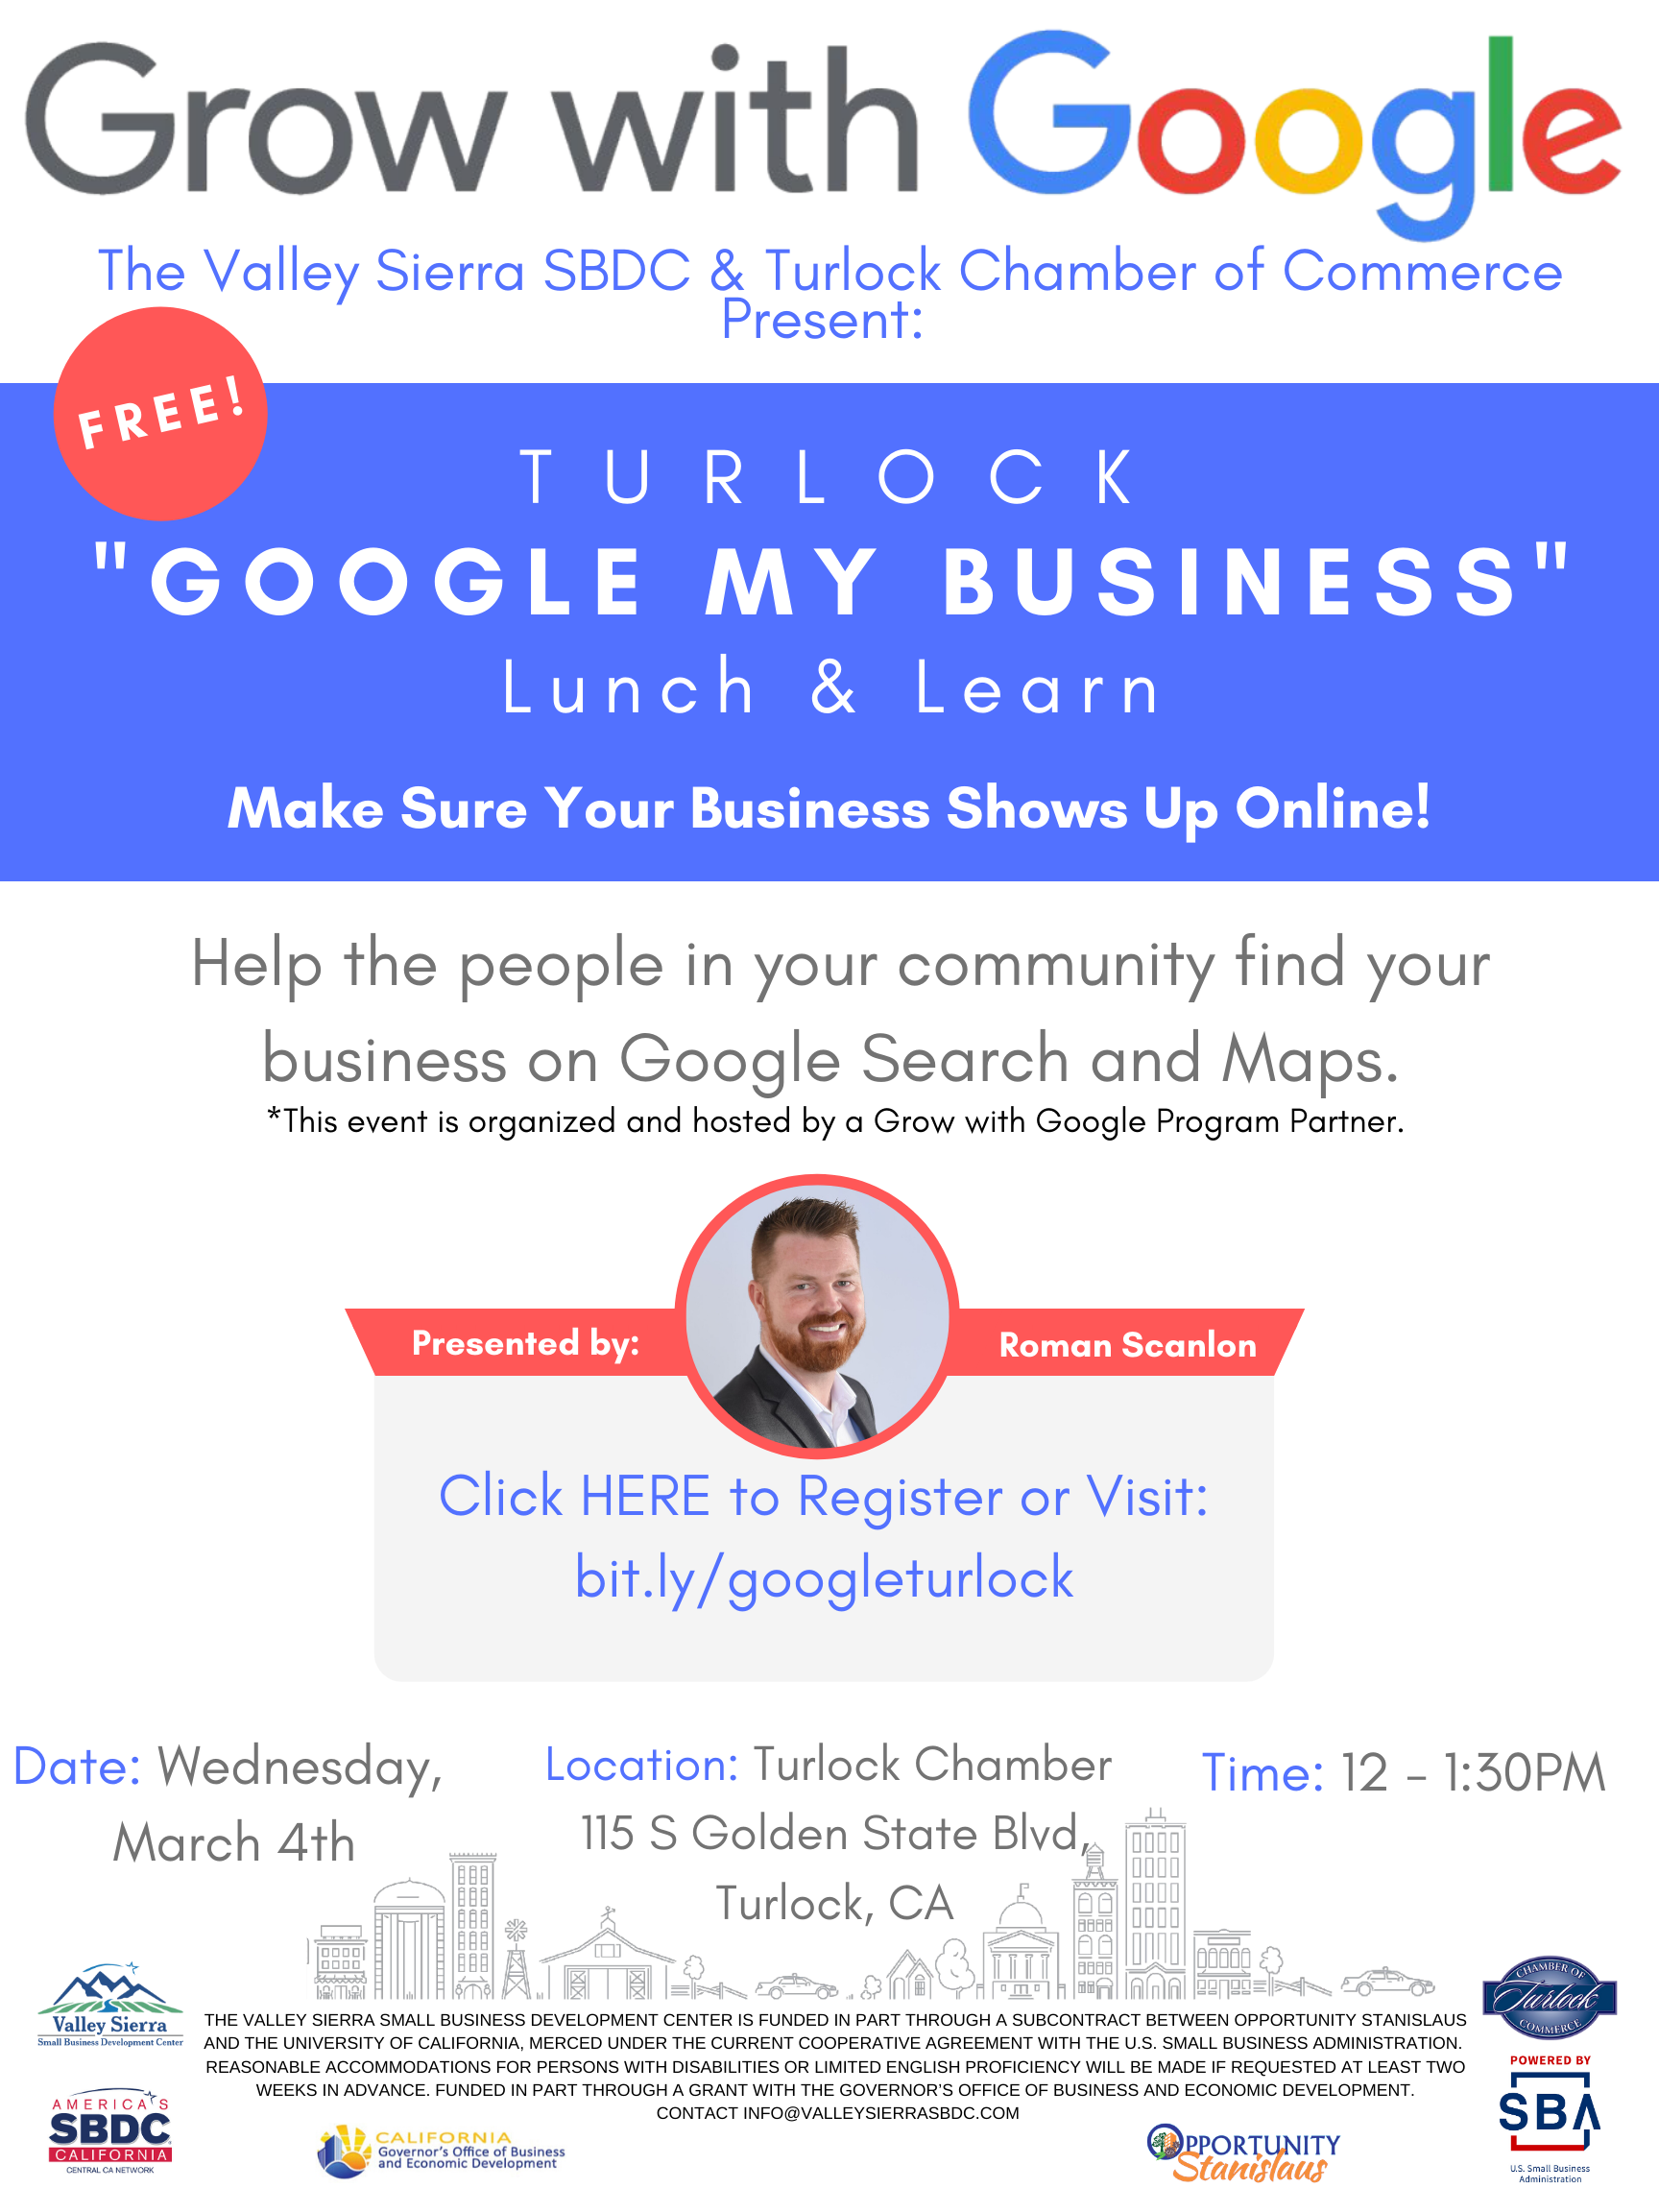 Event Flyer, Turlock Lunch & Learn: Google My Business. 3/4/2020 12p - 130p. Free. 115 S. Golden State Blvd. Turlock, Ca.